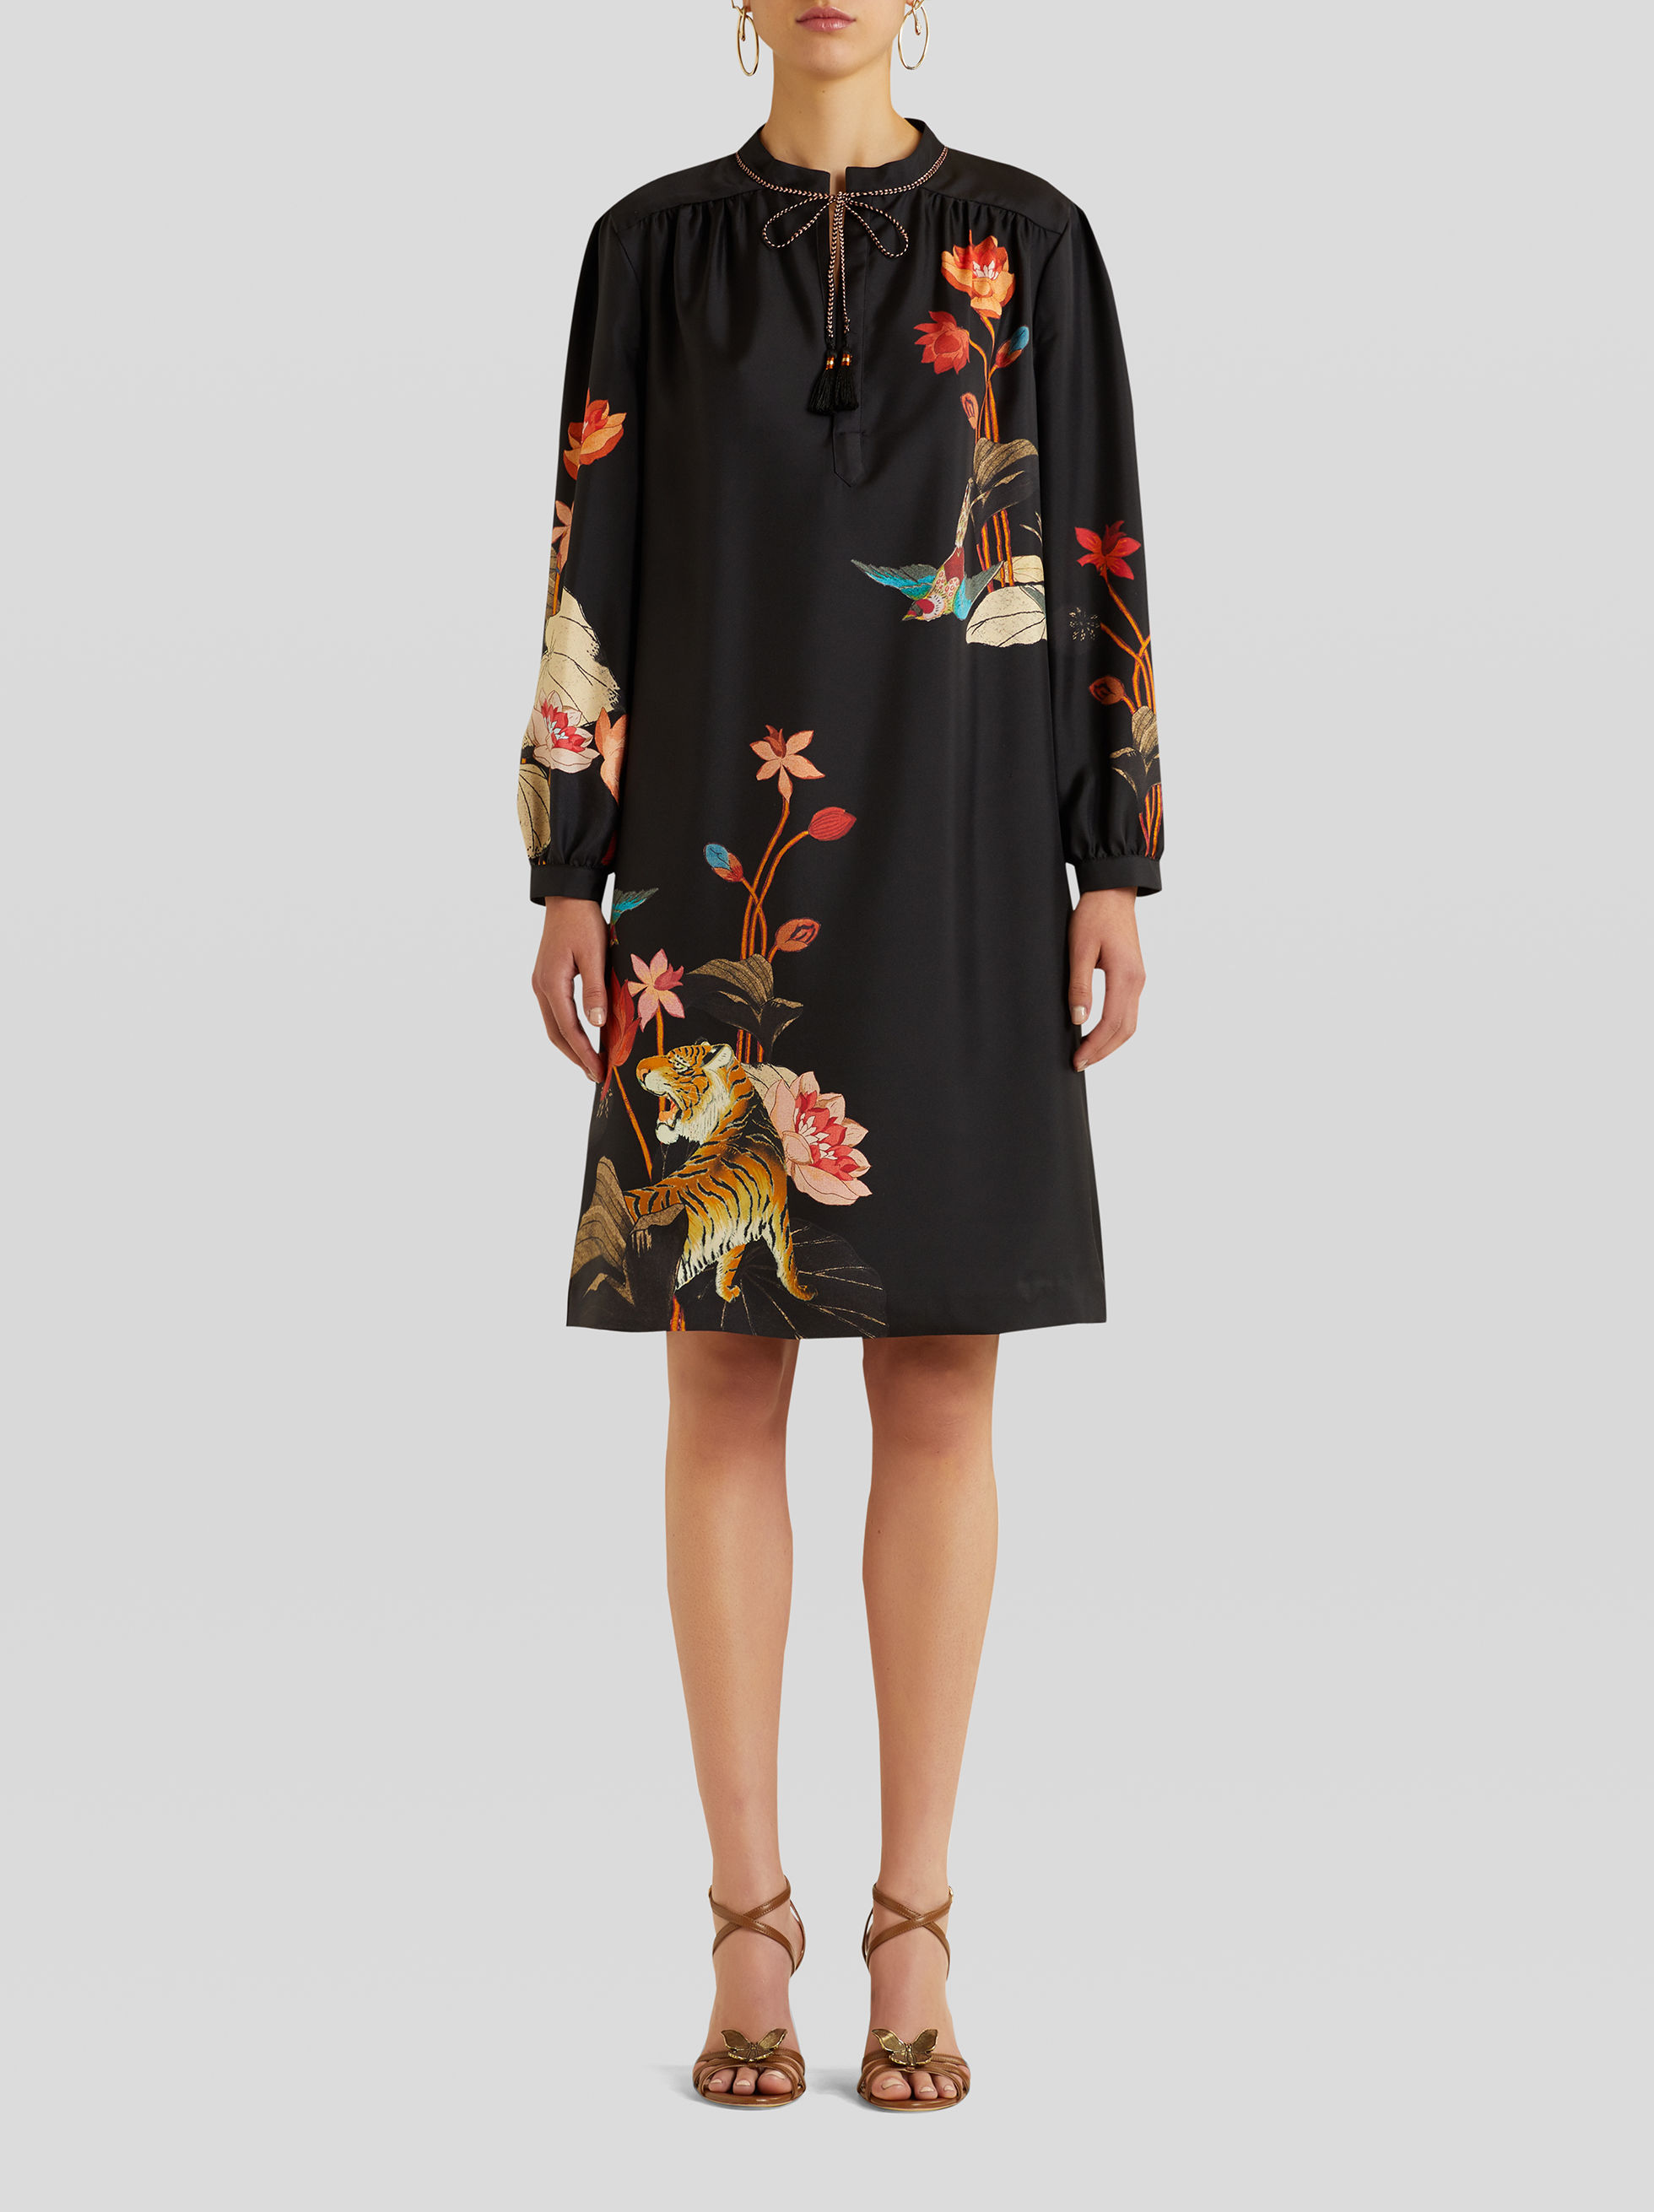 Etro TIGER AND WATER LILY DESIGN SILK DRESS